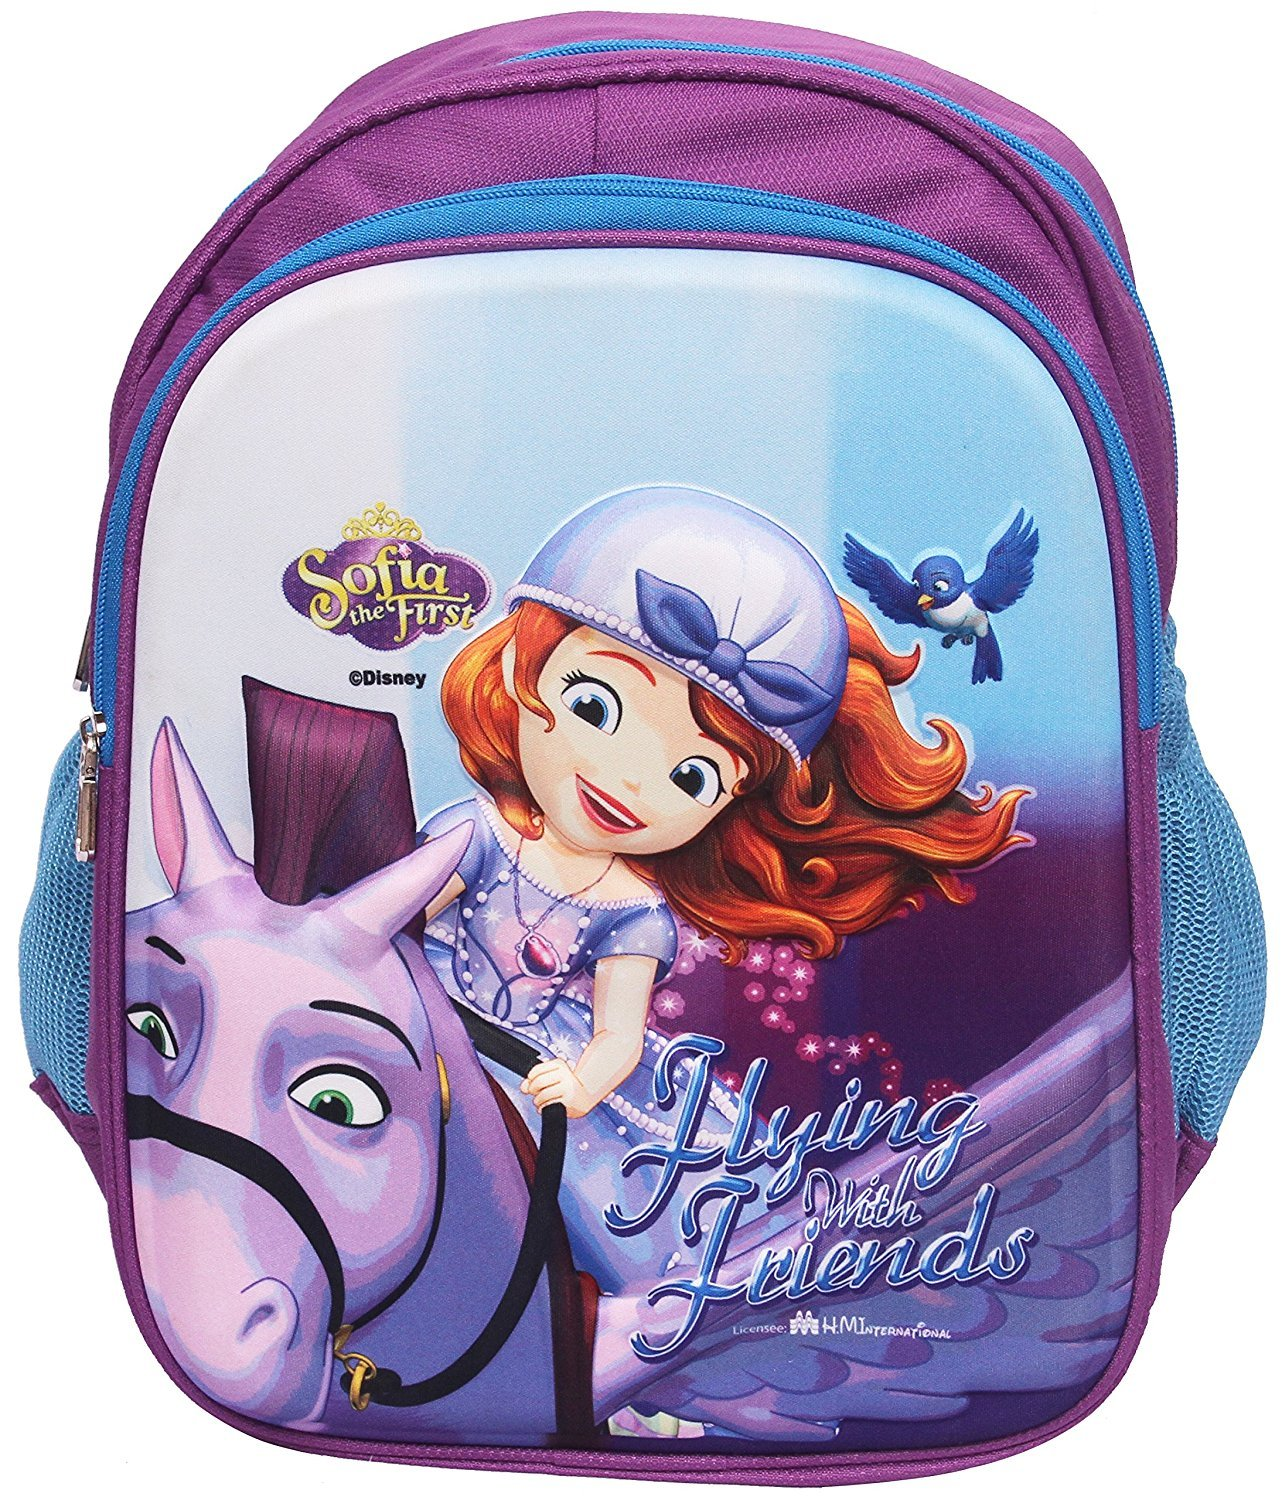 a6636f73d0c Disney Junior 3D Embossed Kids Backpack - in Disney Junior Characters (Sofia  The First Combo) 14 litres  Amazon.in  Toys   Games